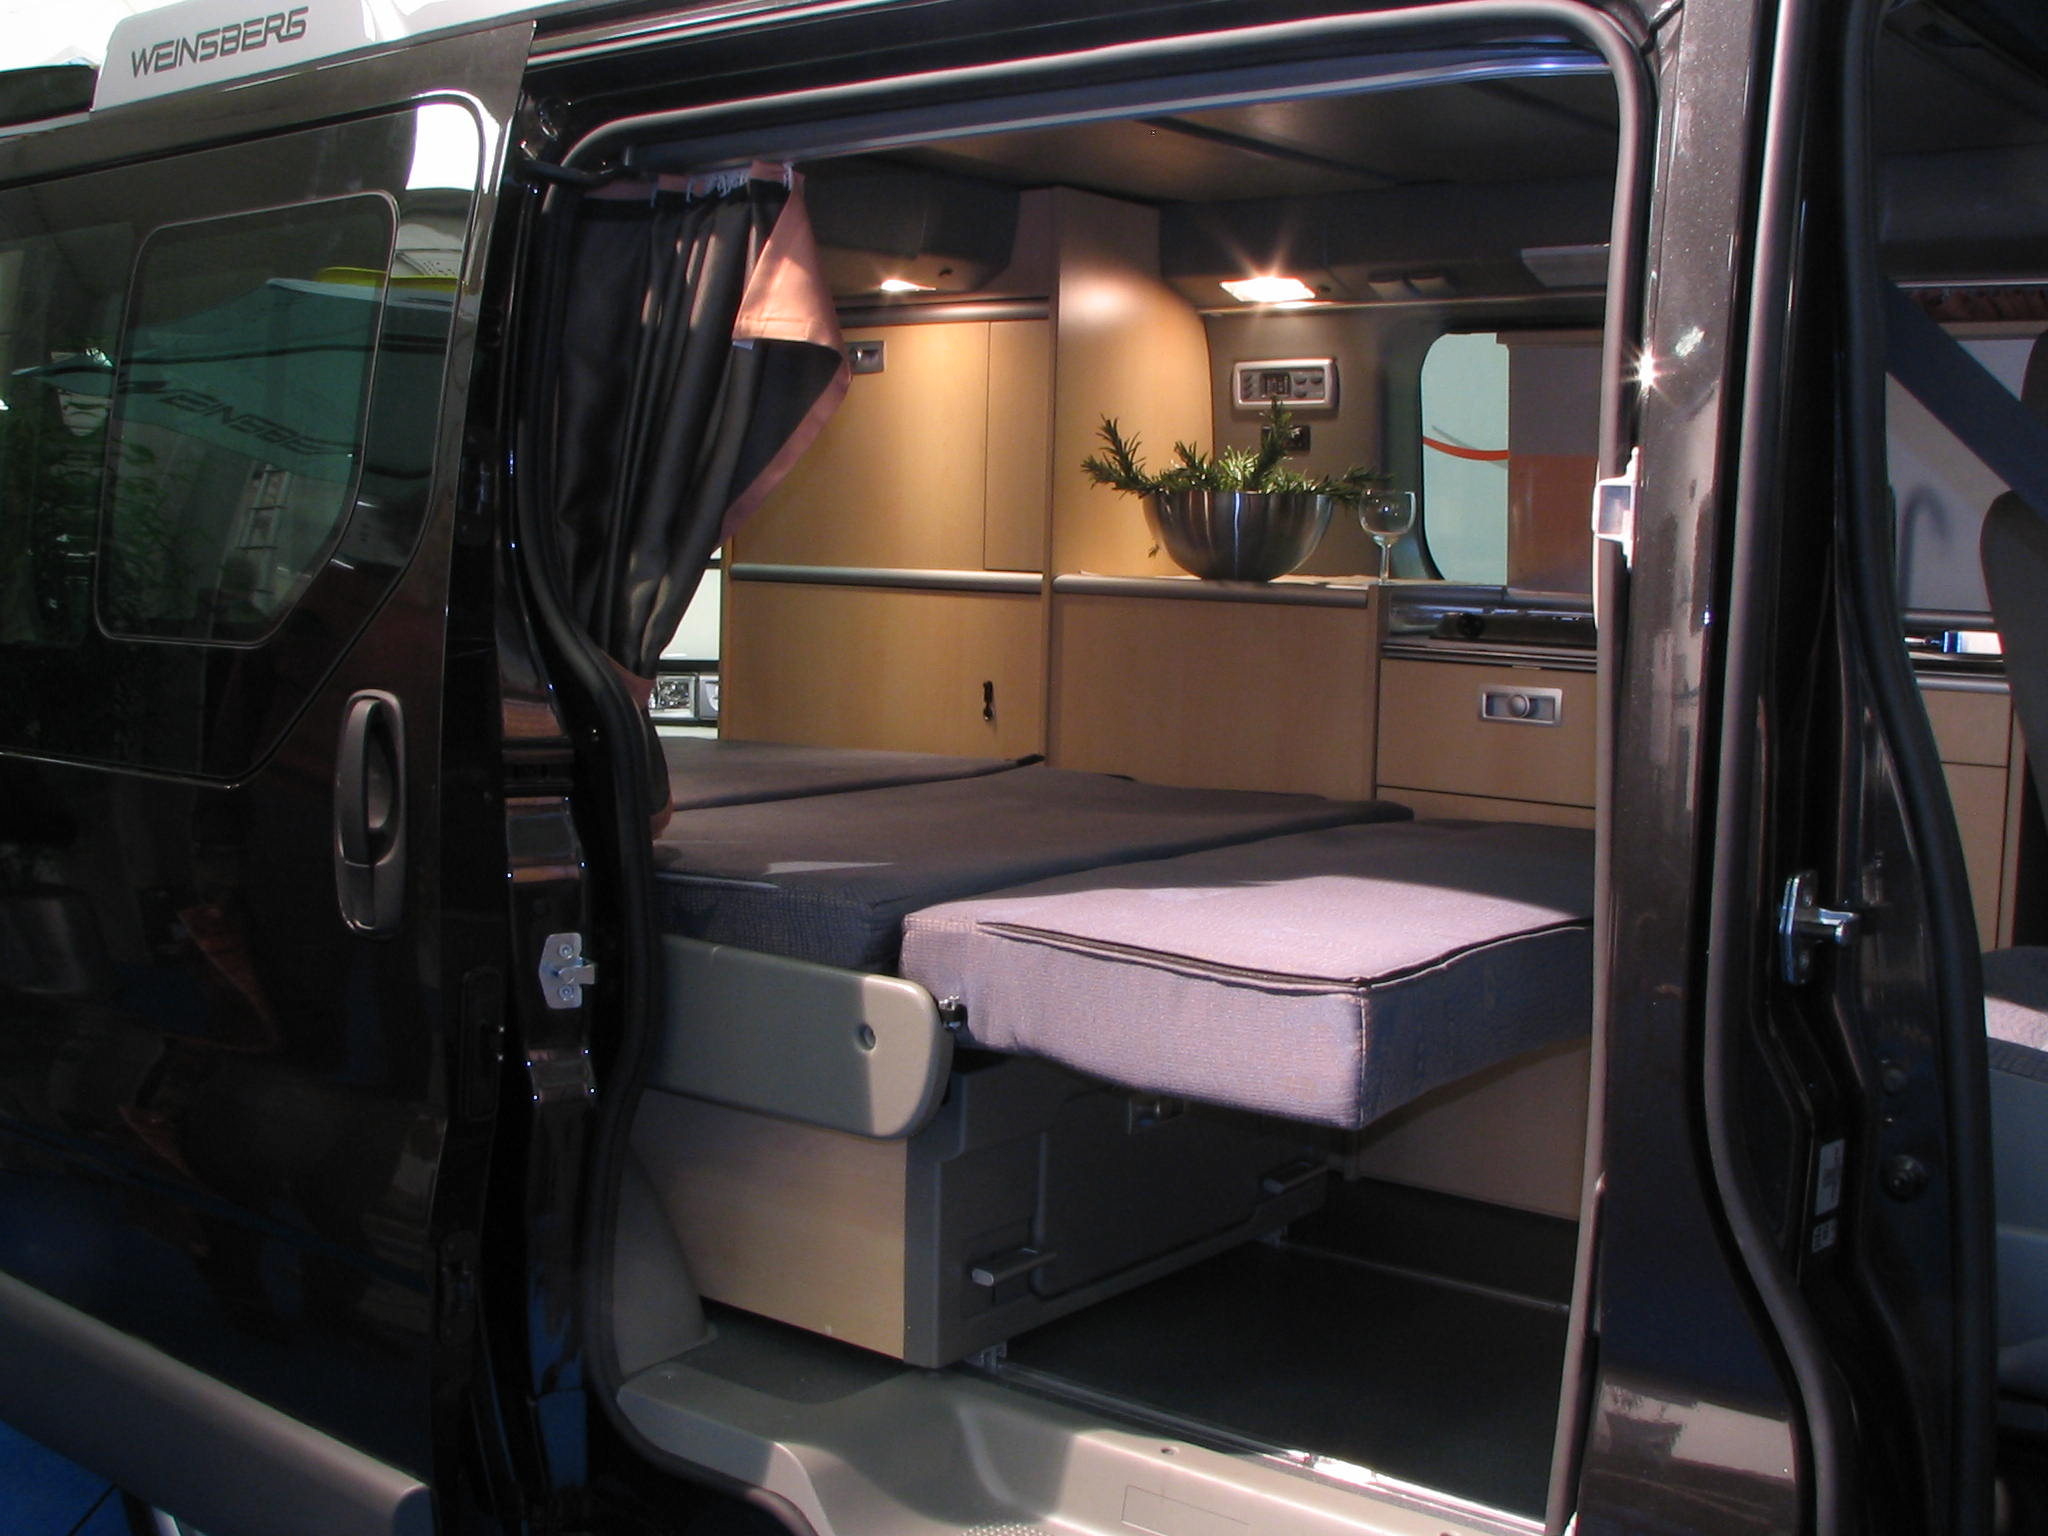 Fabulous Renault Trafic Camping Conversions Rear Bed Ocoug Best Dining Table And Chair Ideas Images Ocougorg